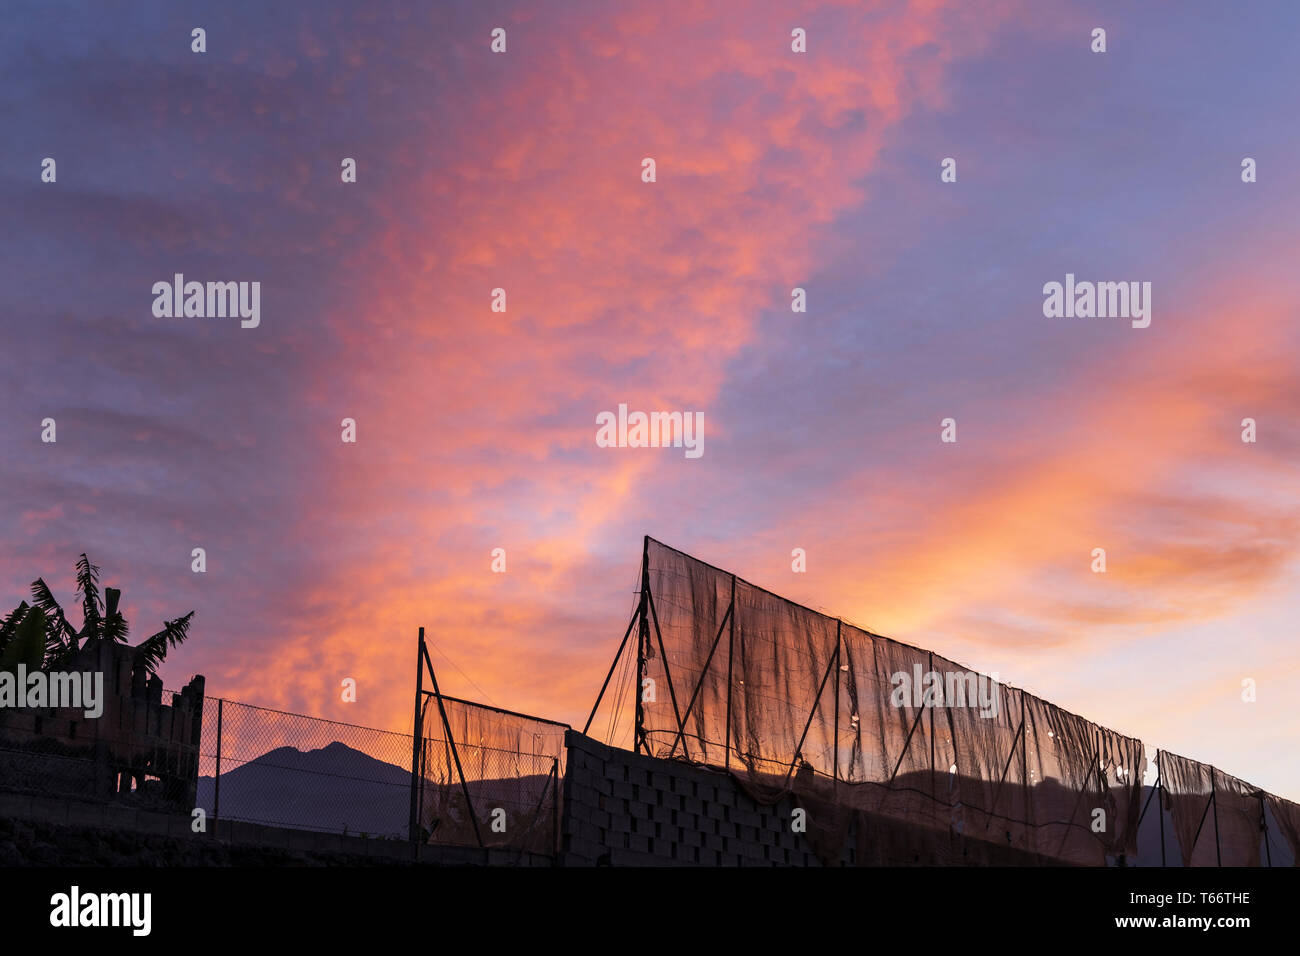 Red sky in the morning, dawn over fencing around a banana plantation with mount Teide in the background, Tenerife, Canary Islands, Spain - Stock Image